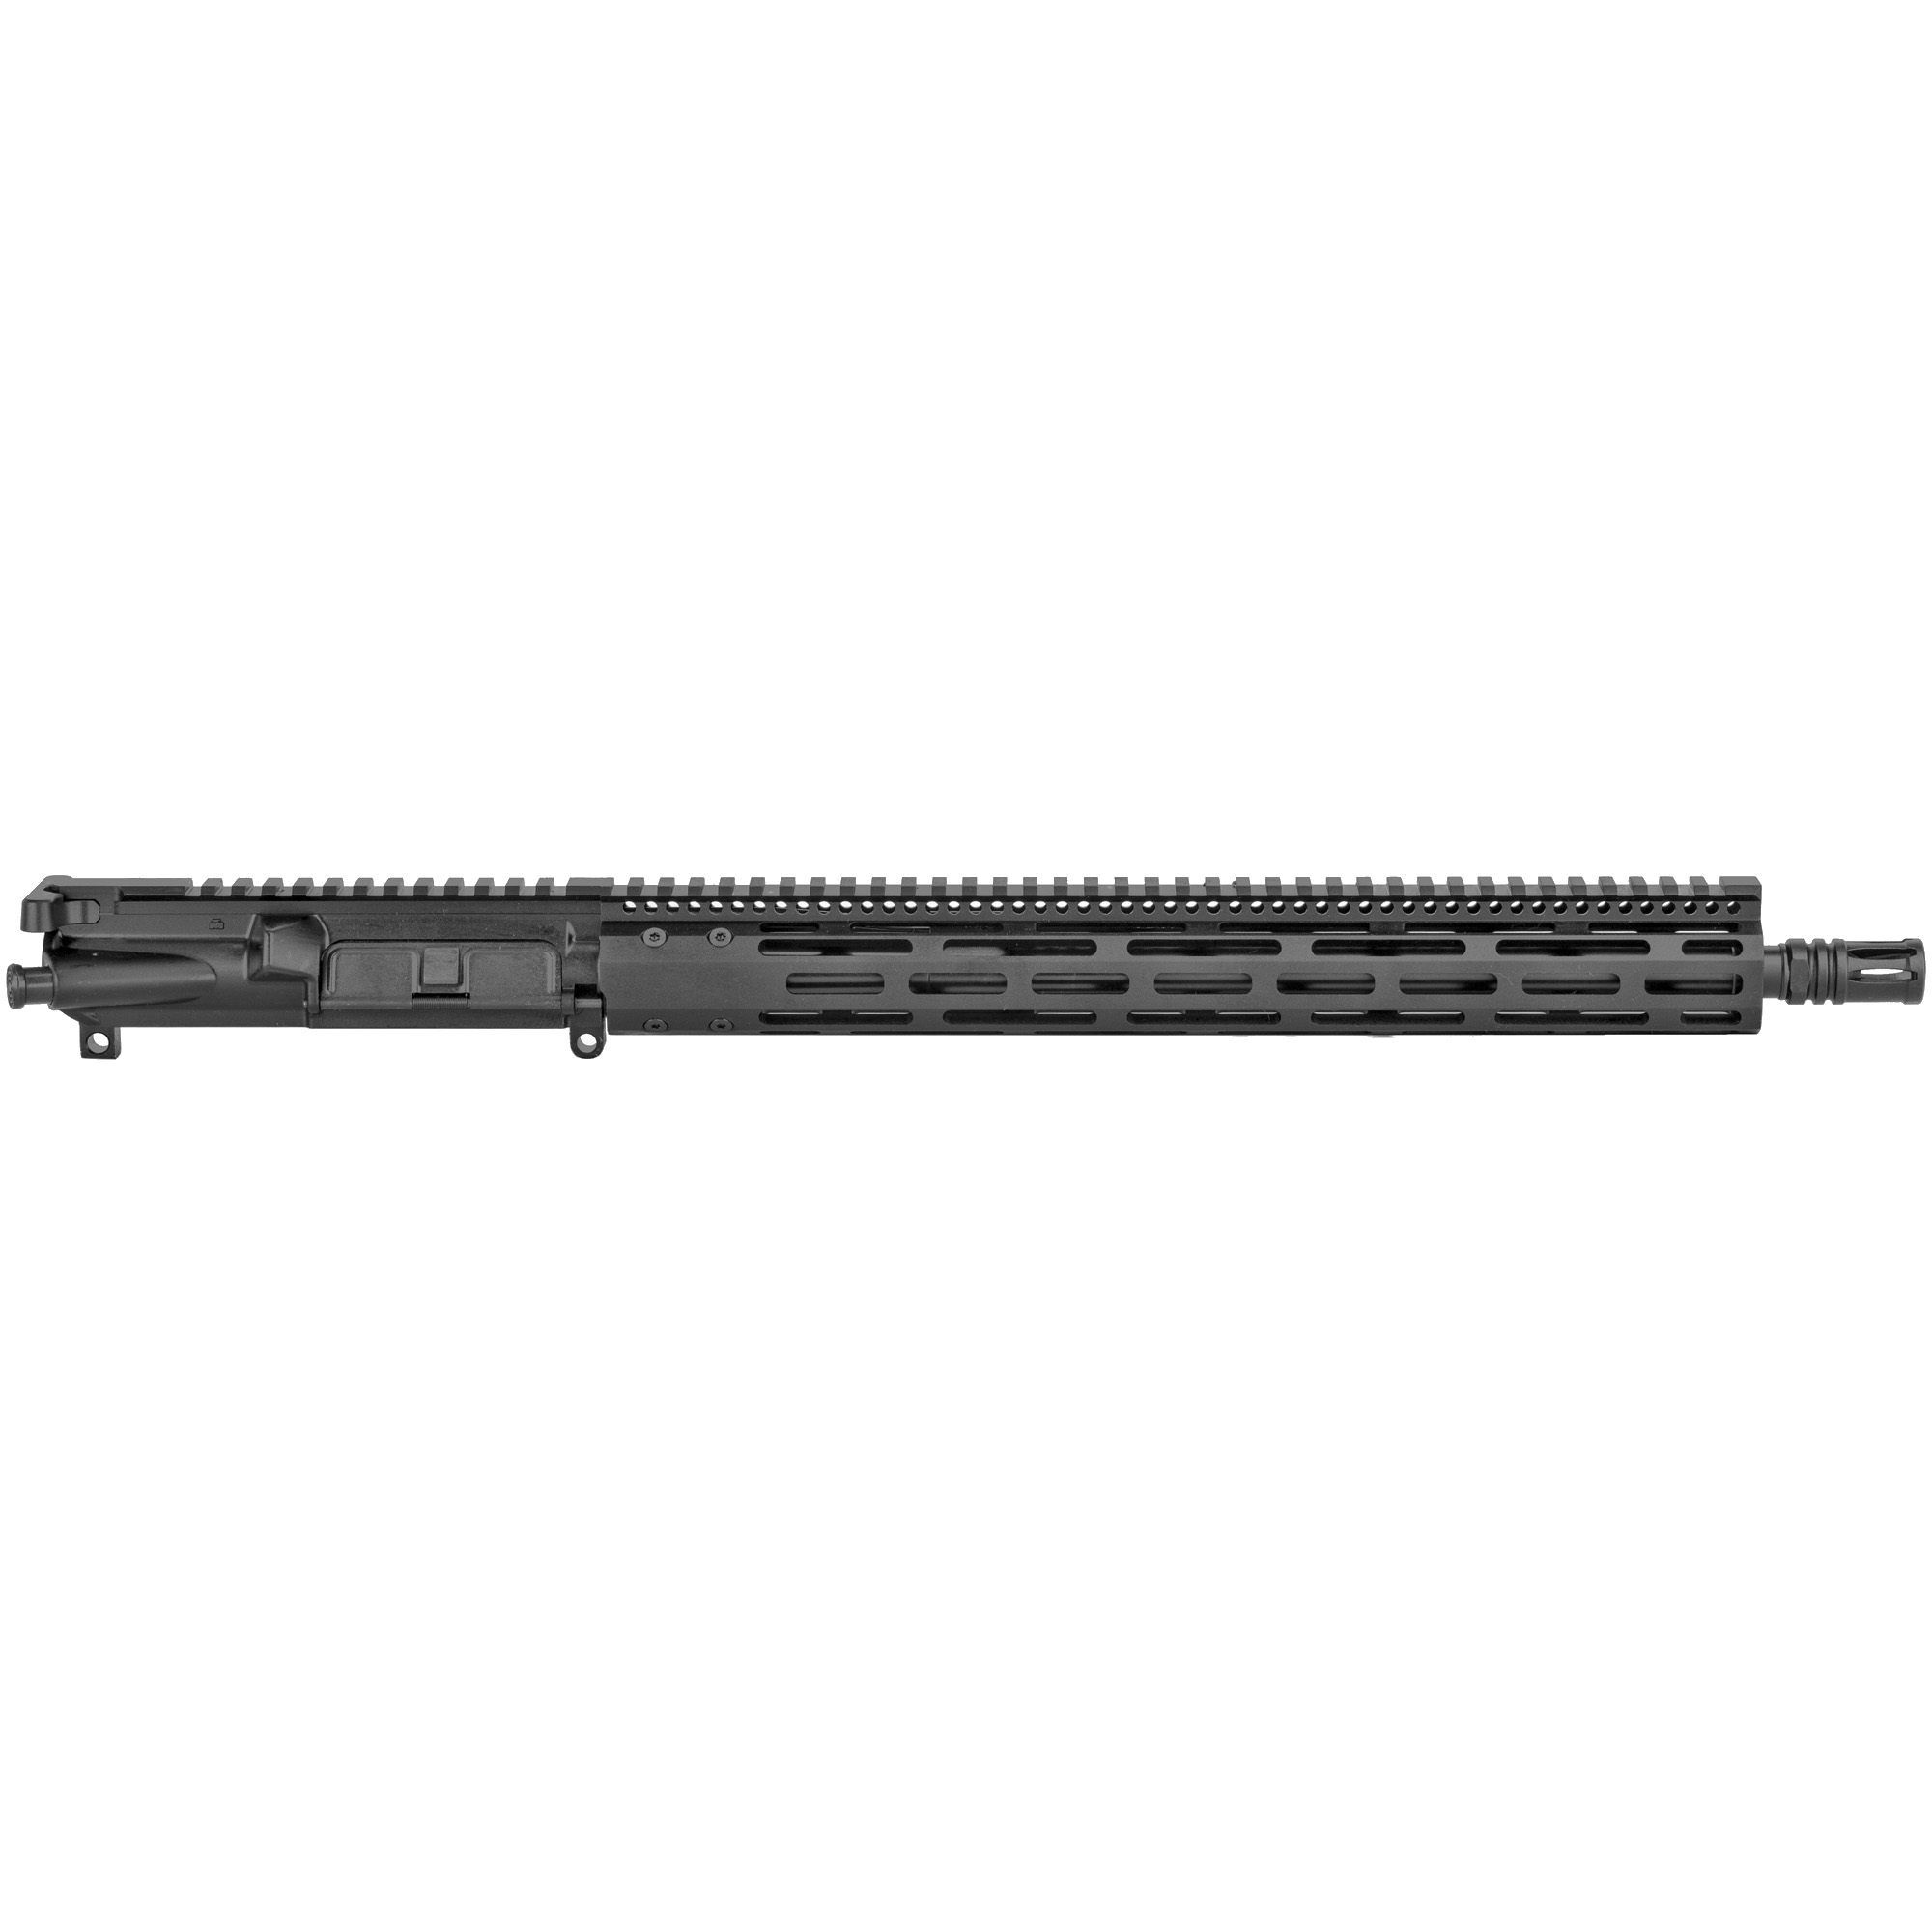 """The Radical Firearms 16"""" HBAR profile 300BLK is a complete MIL-STD upper ready to drop on any MIL-STD lower Receiver. Perfect for the novice or advanced shooter wanting to finish out that build and hit the range. Built with a 15"""" FCR free float rail system for increased accuracy and keeping your hands cool. No matter what your style of shooting is"""" Radical Firearms has you covered."""